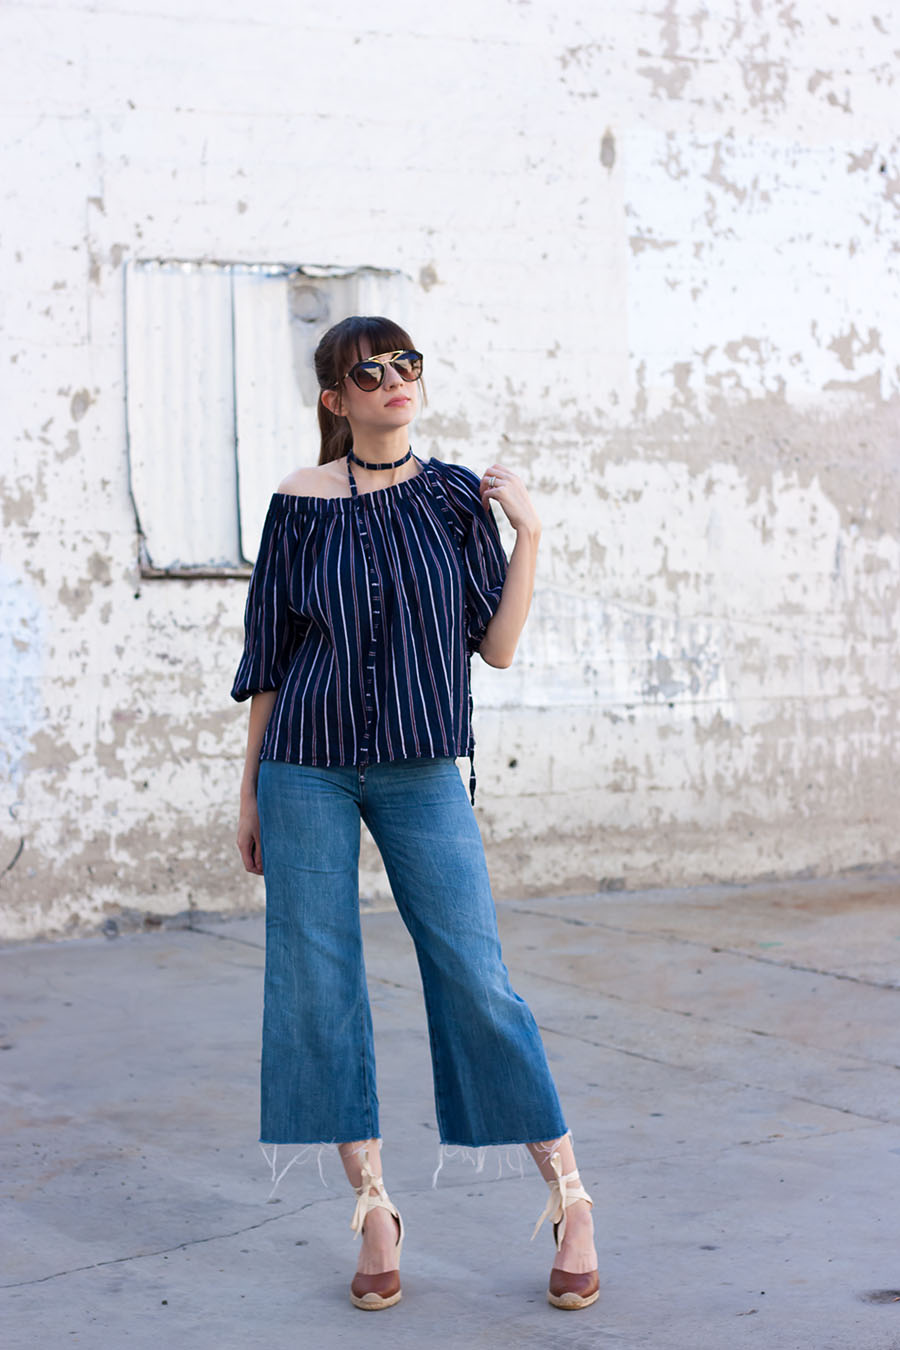 Storets Off the Shoulder Top, Zara Denim, Zara Culottes, Designer Sunglasses